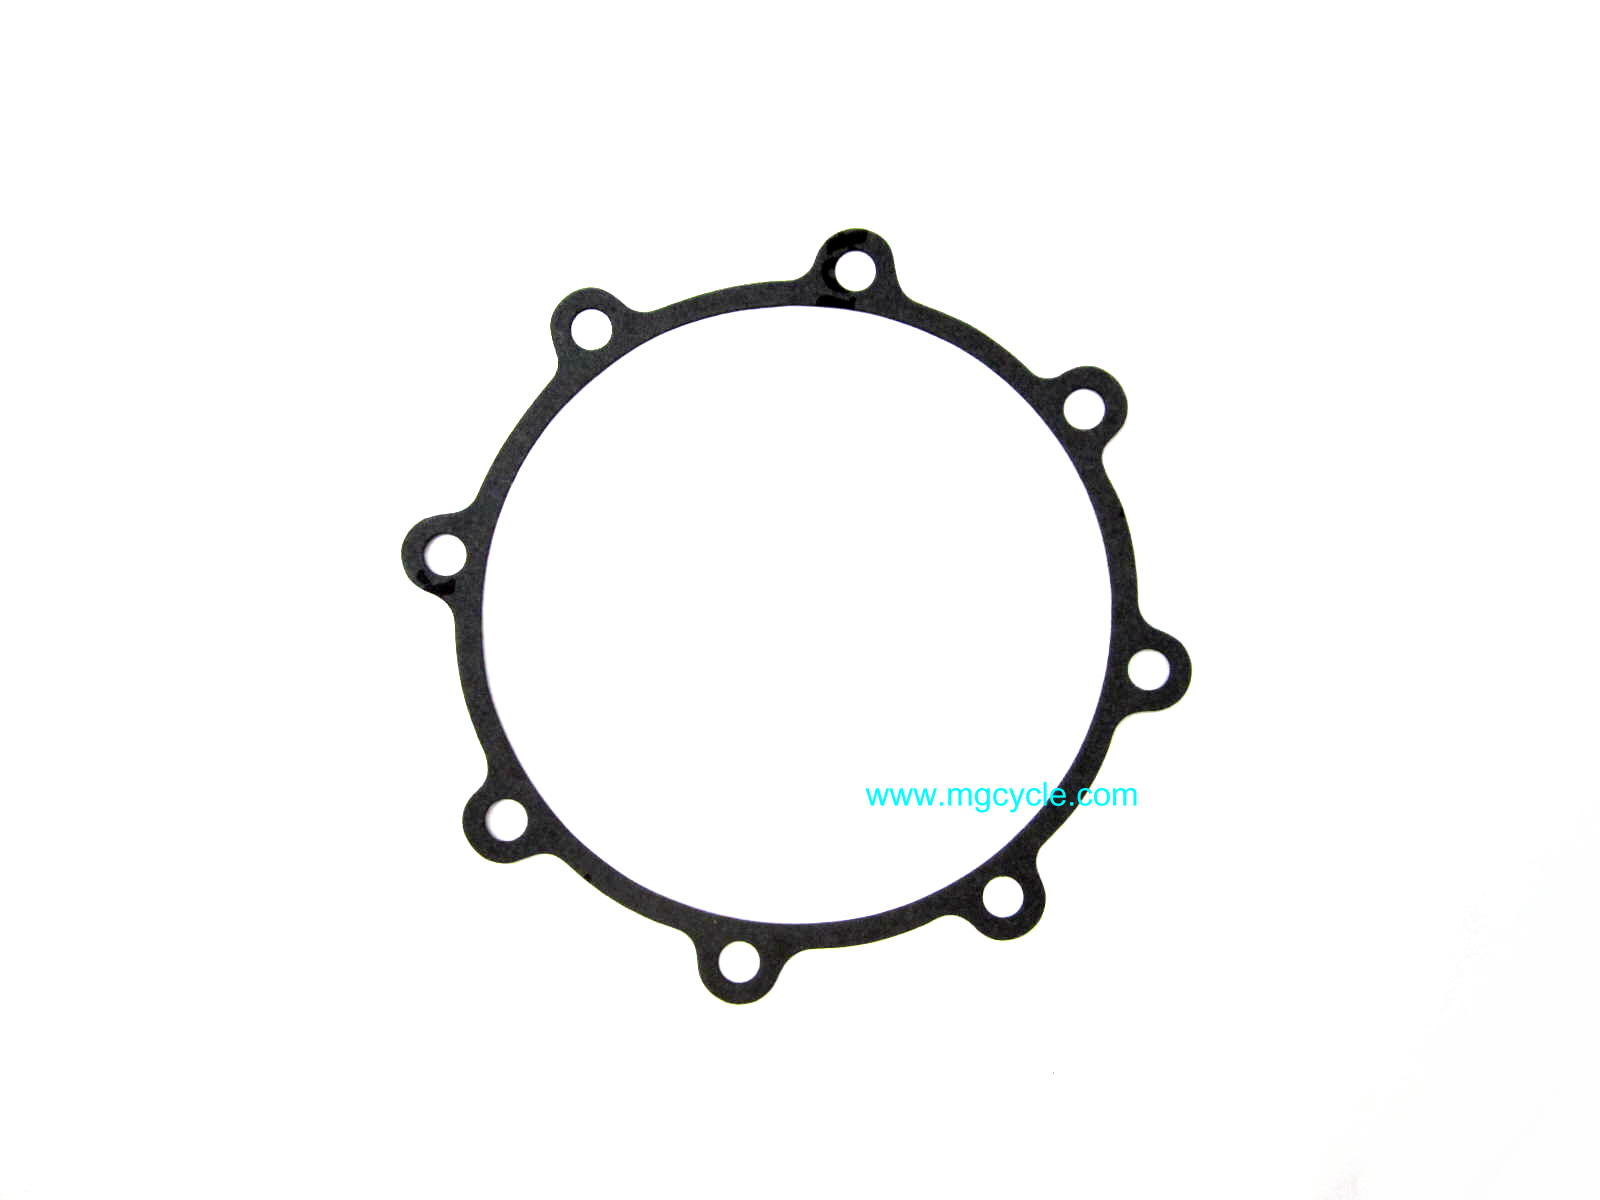 Rear main bearing carrier flange gasket